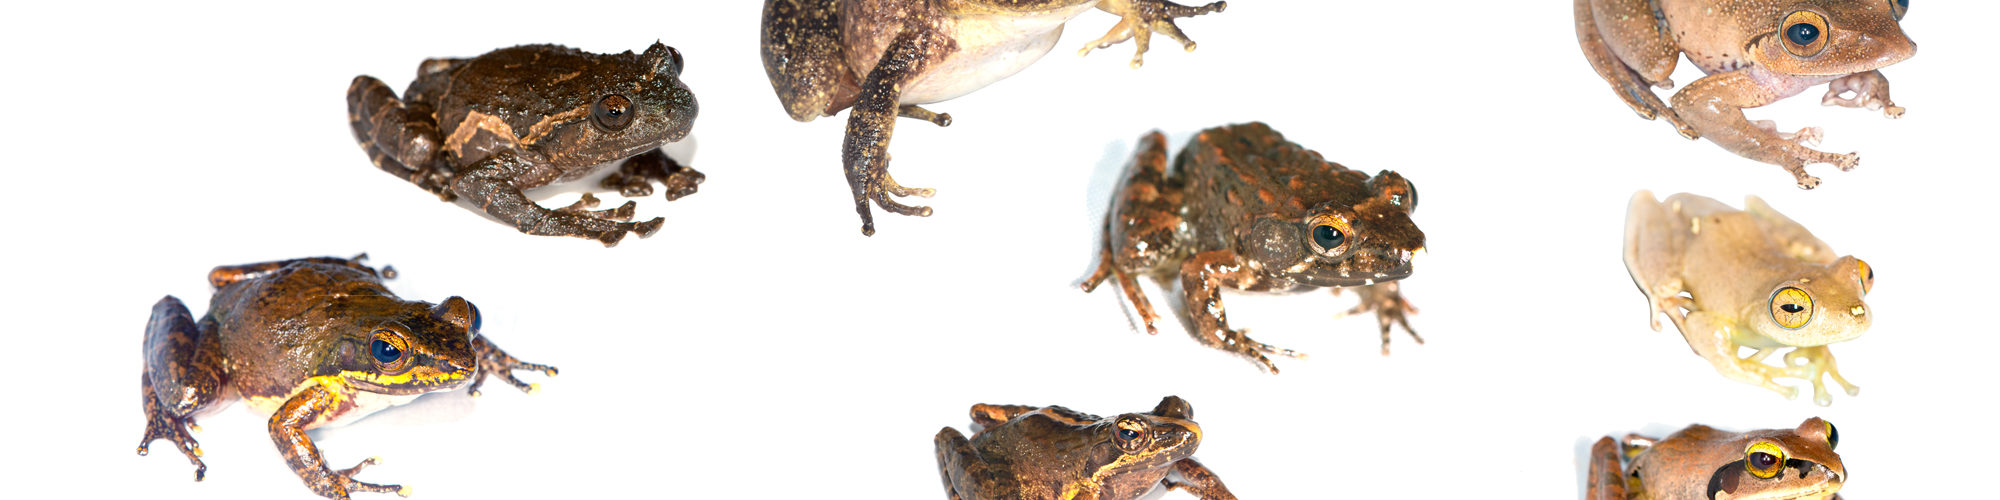 Frogs of Ampotsidy, northern Madagascar. Photographed in January 2016 by Mark D. Scherz.